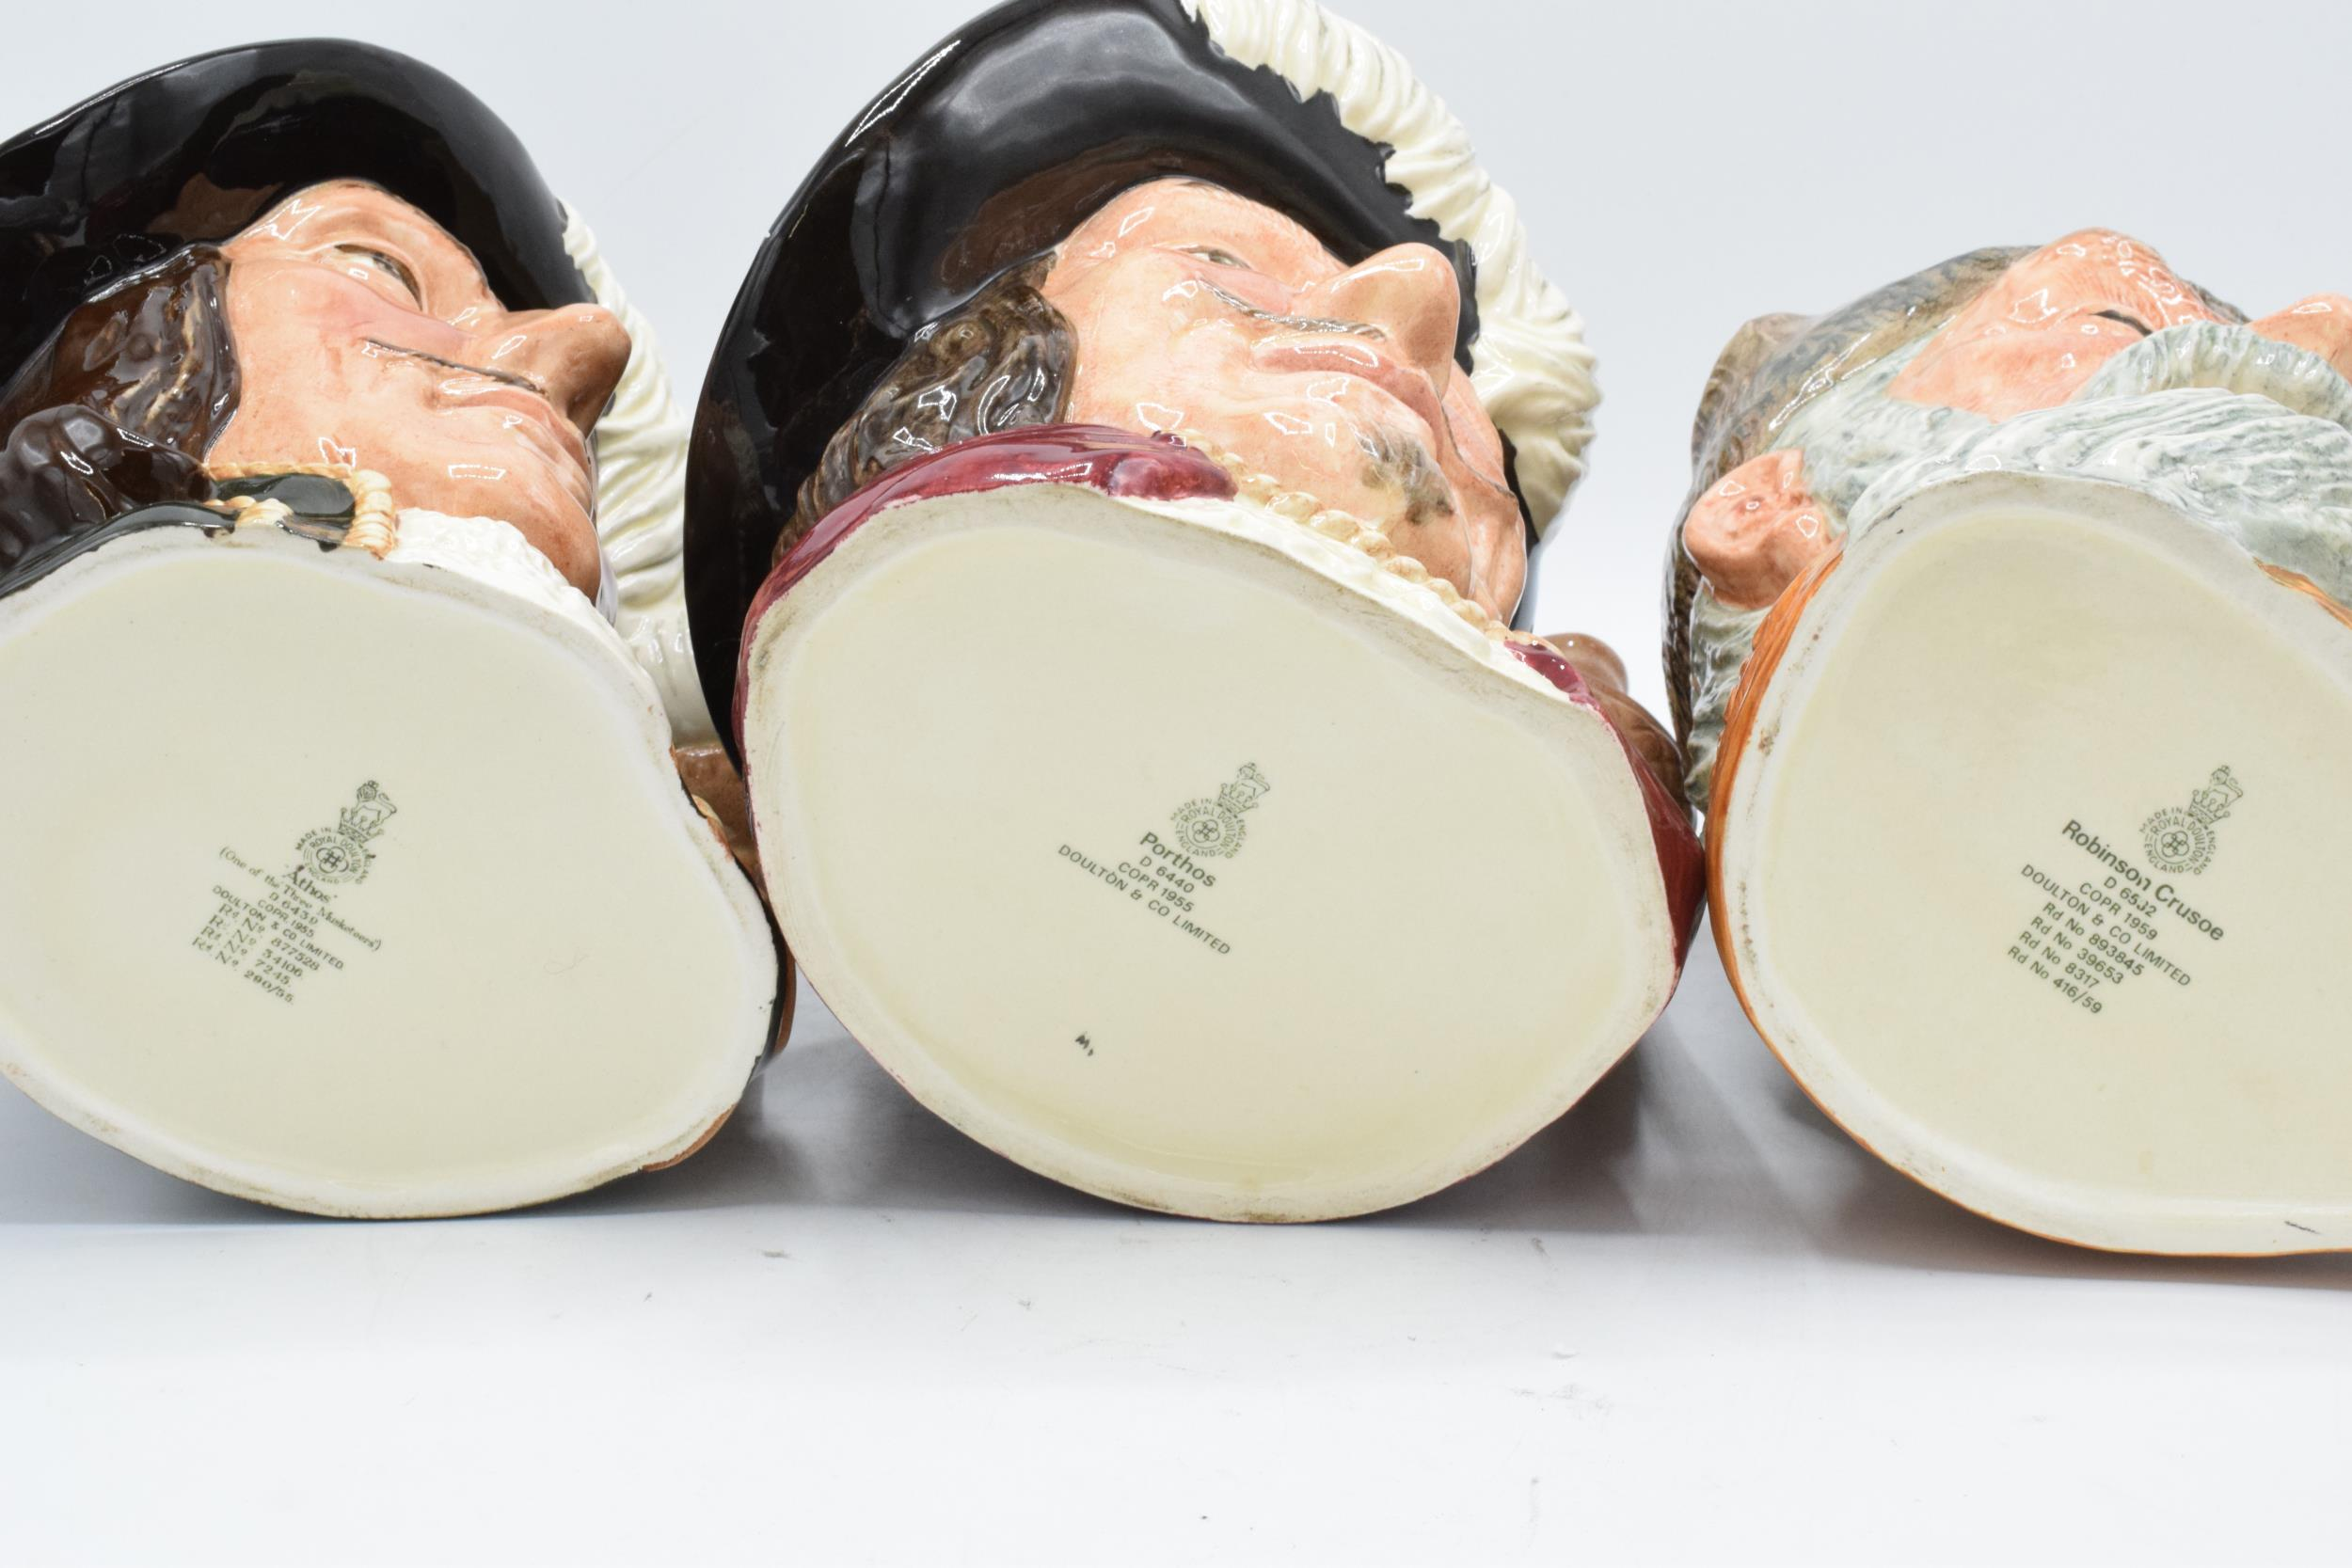 Large Royal Doulton character jugs to include Robinson Crusoe D6532, Porthos D6440 and Athos - Image 3 of 3